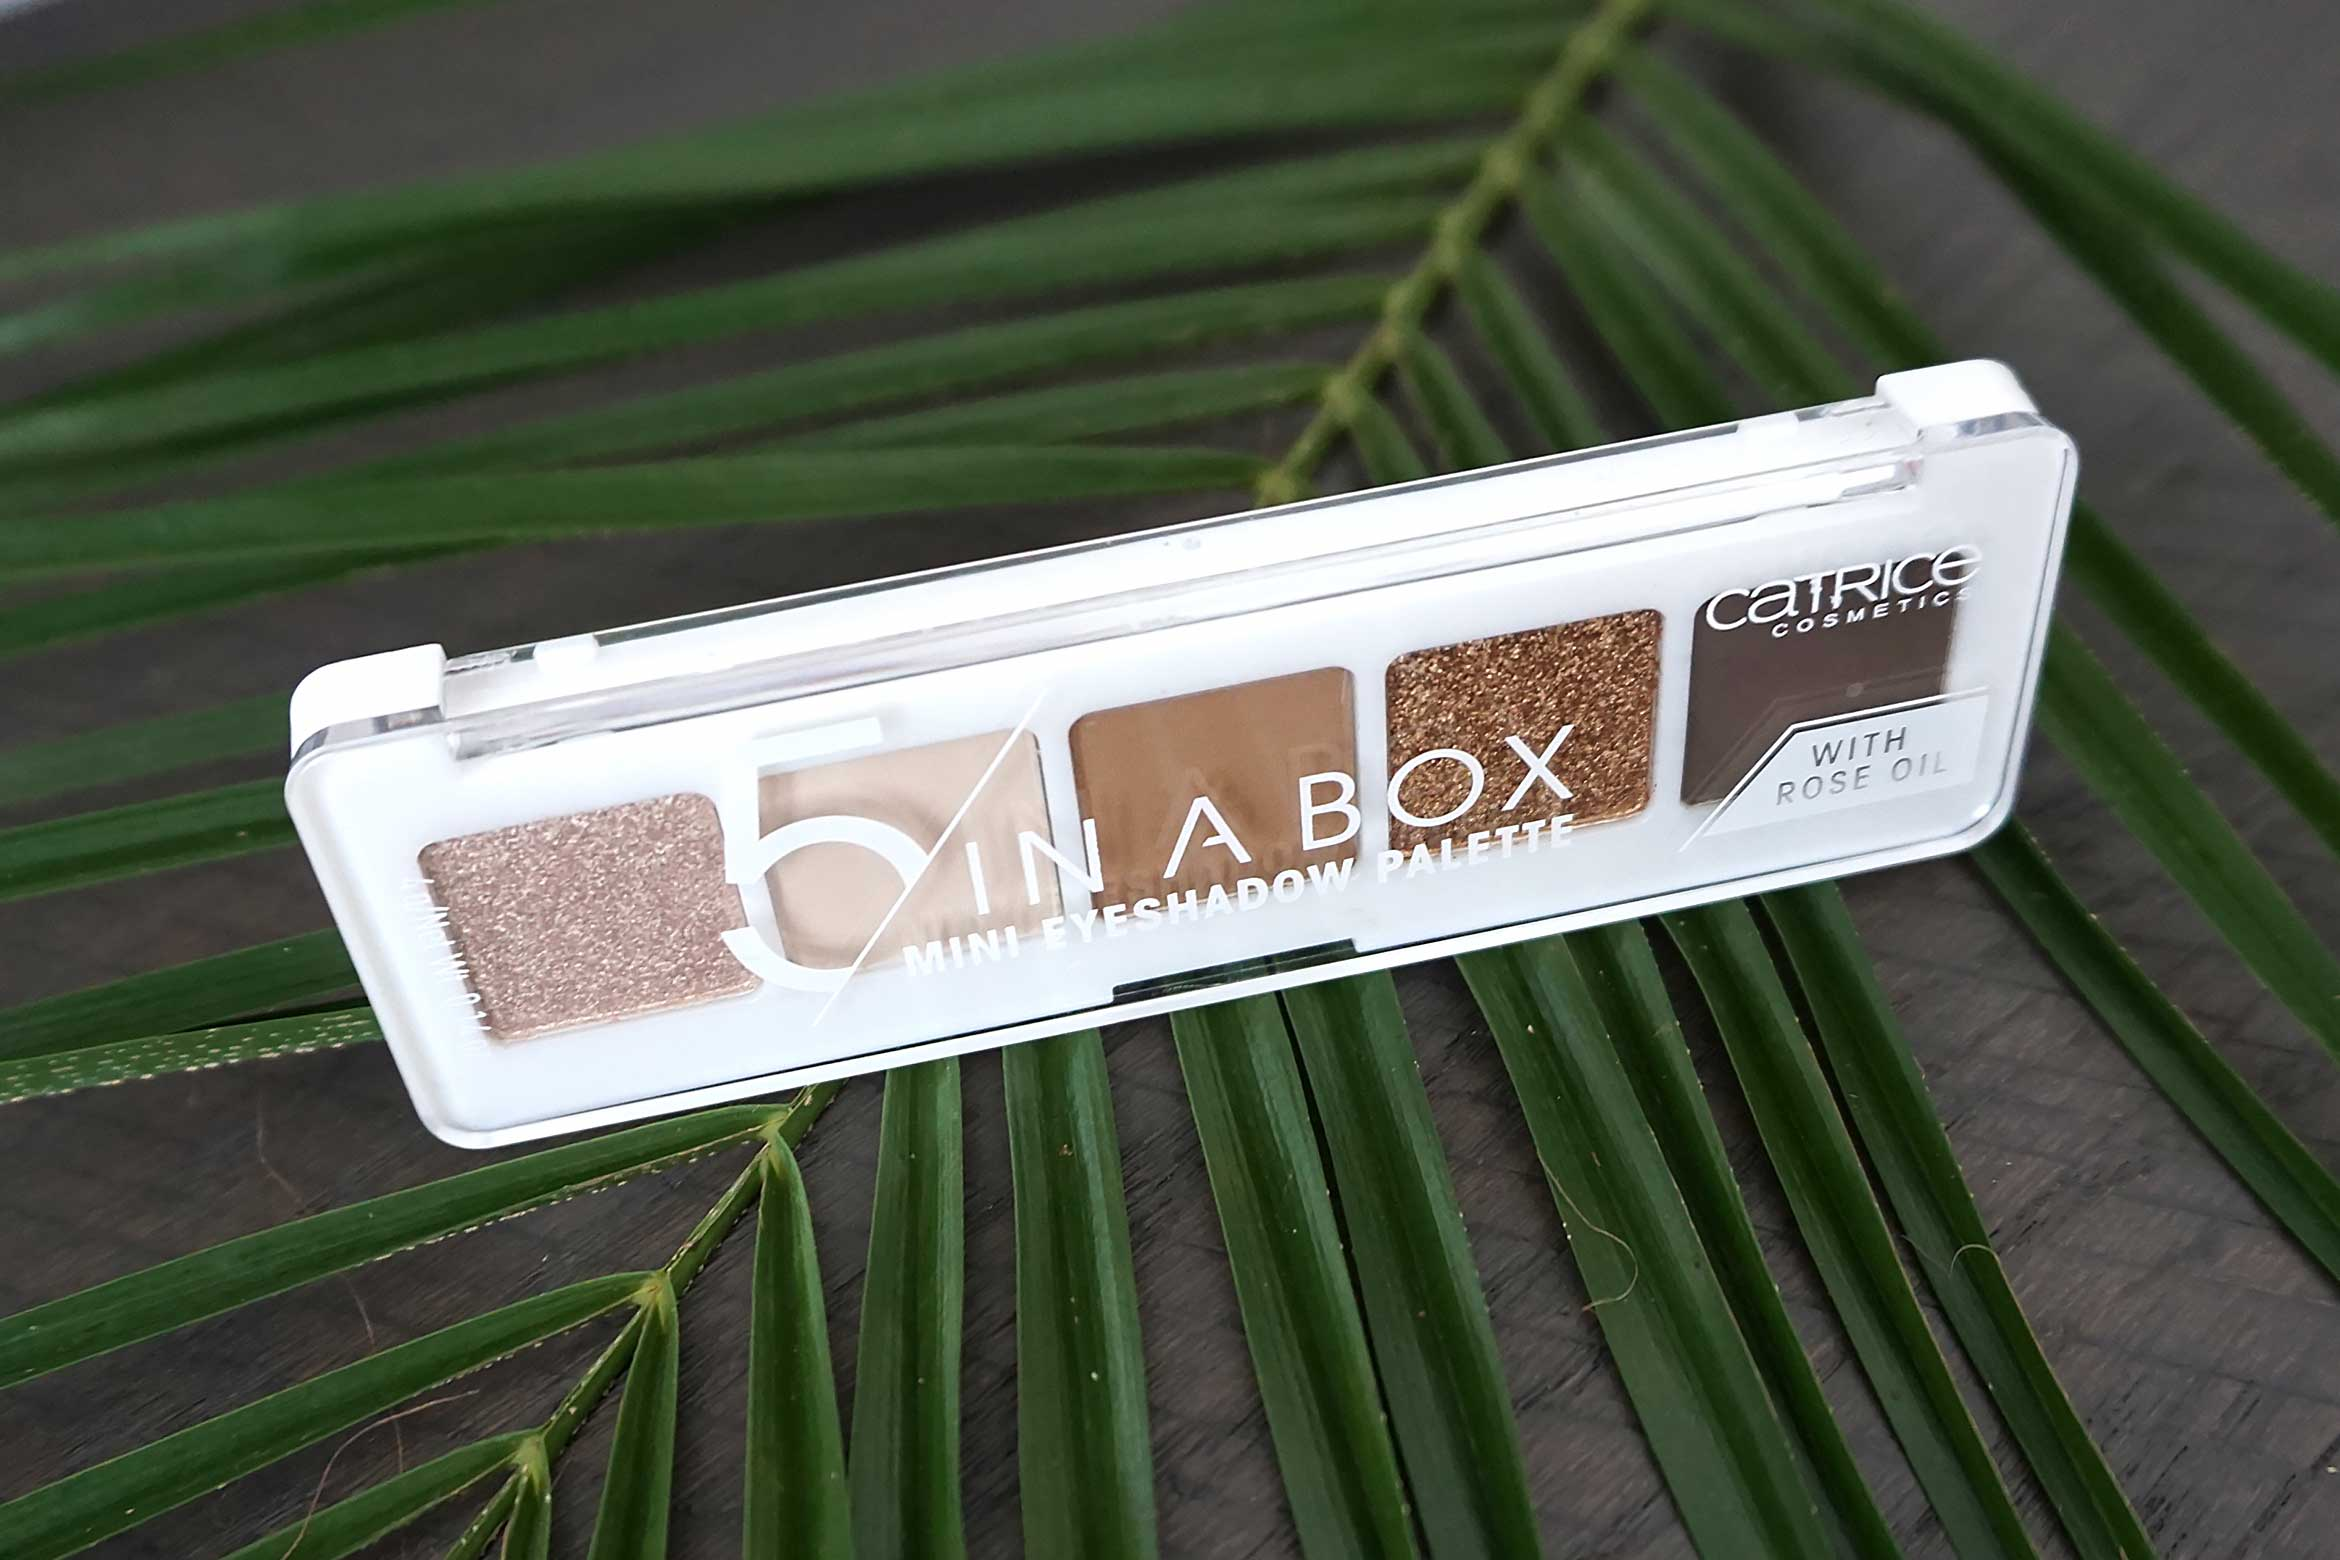 catrice 5 in a box mini eyeshadow palette review-1